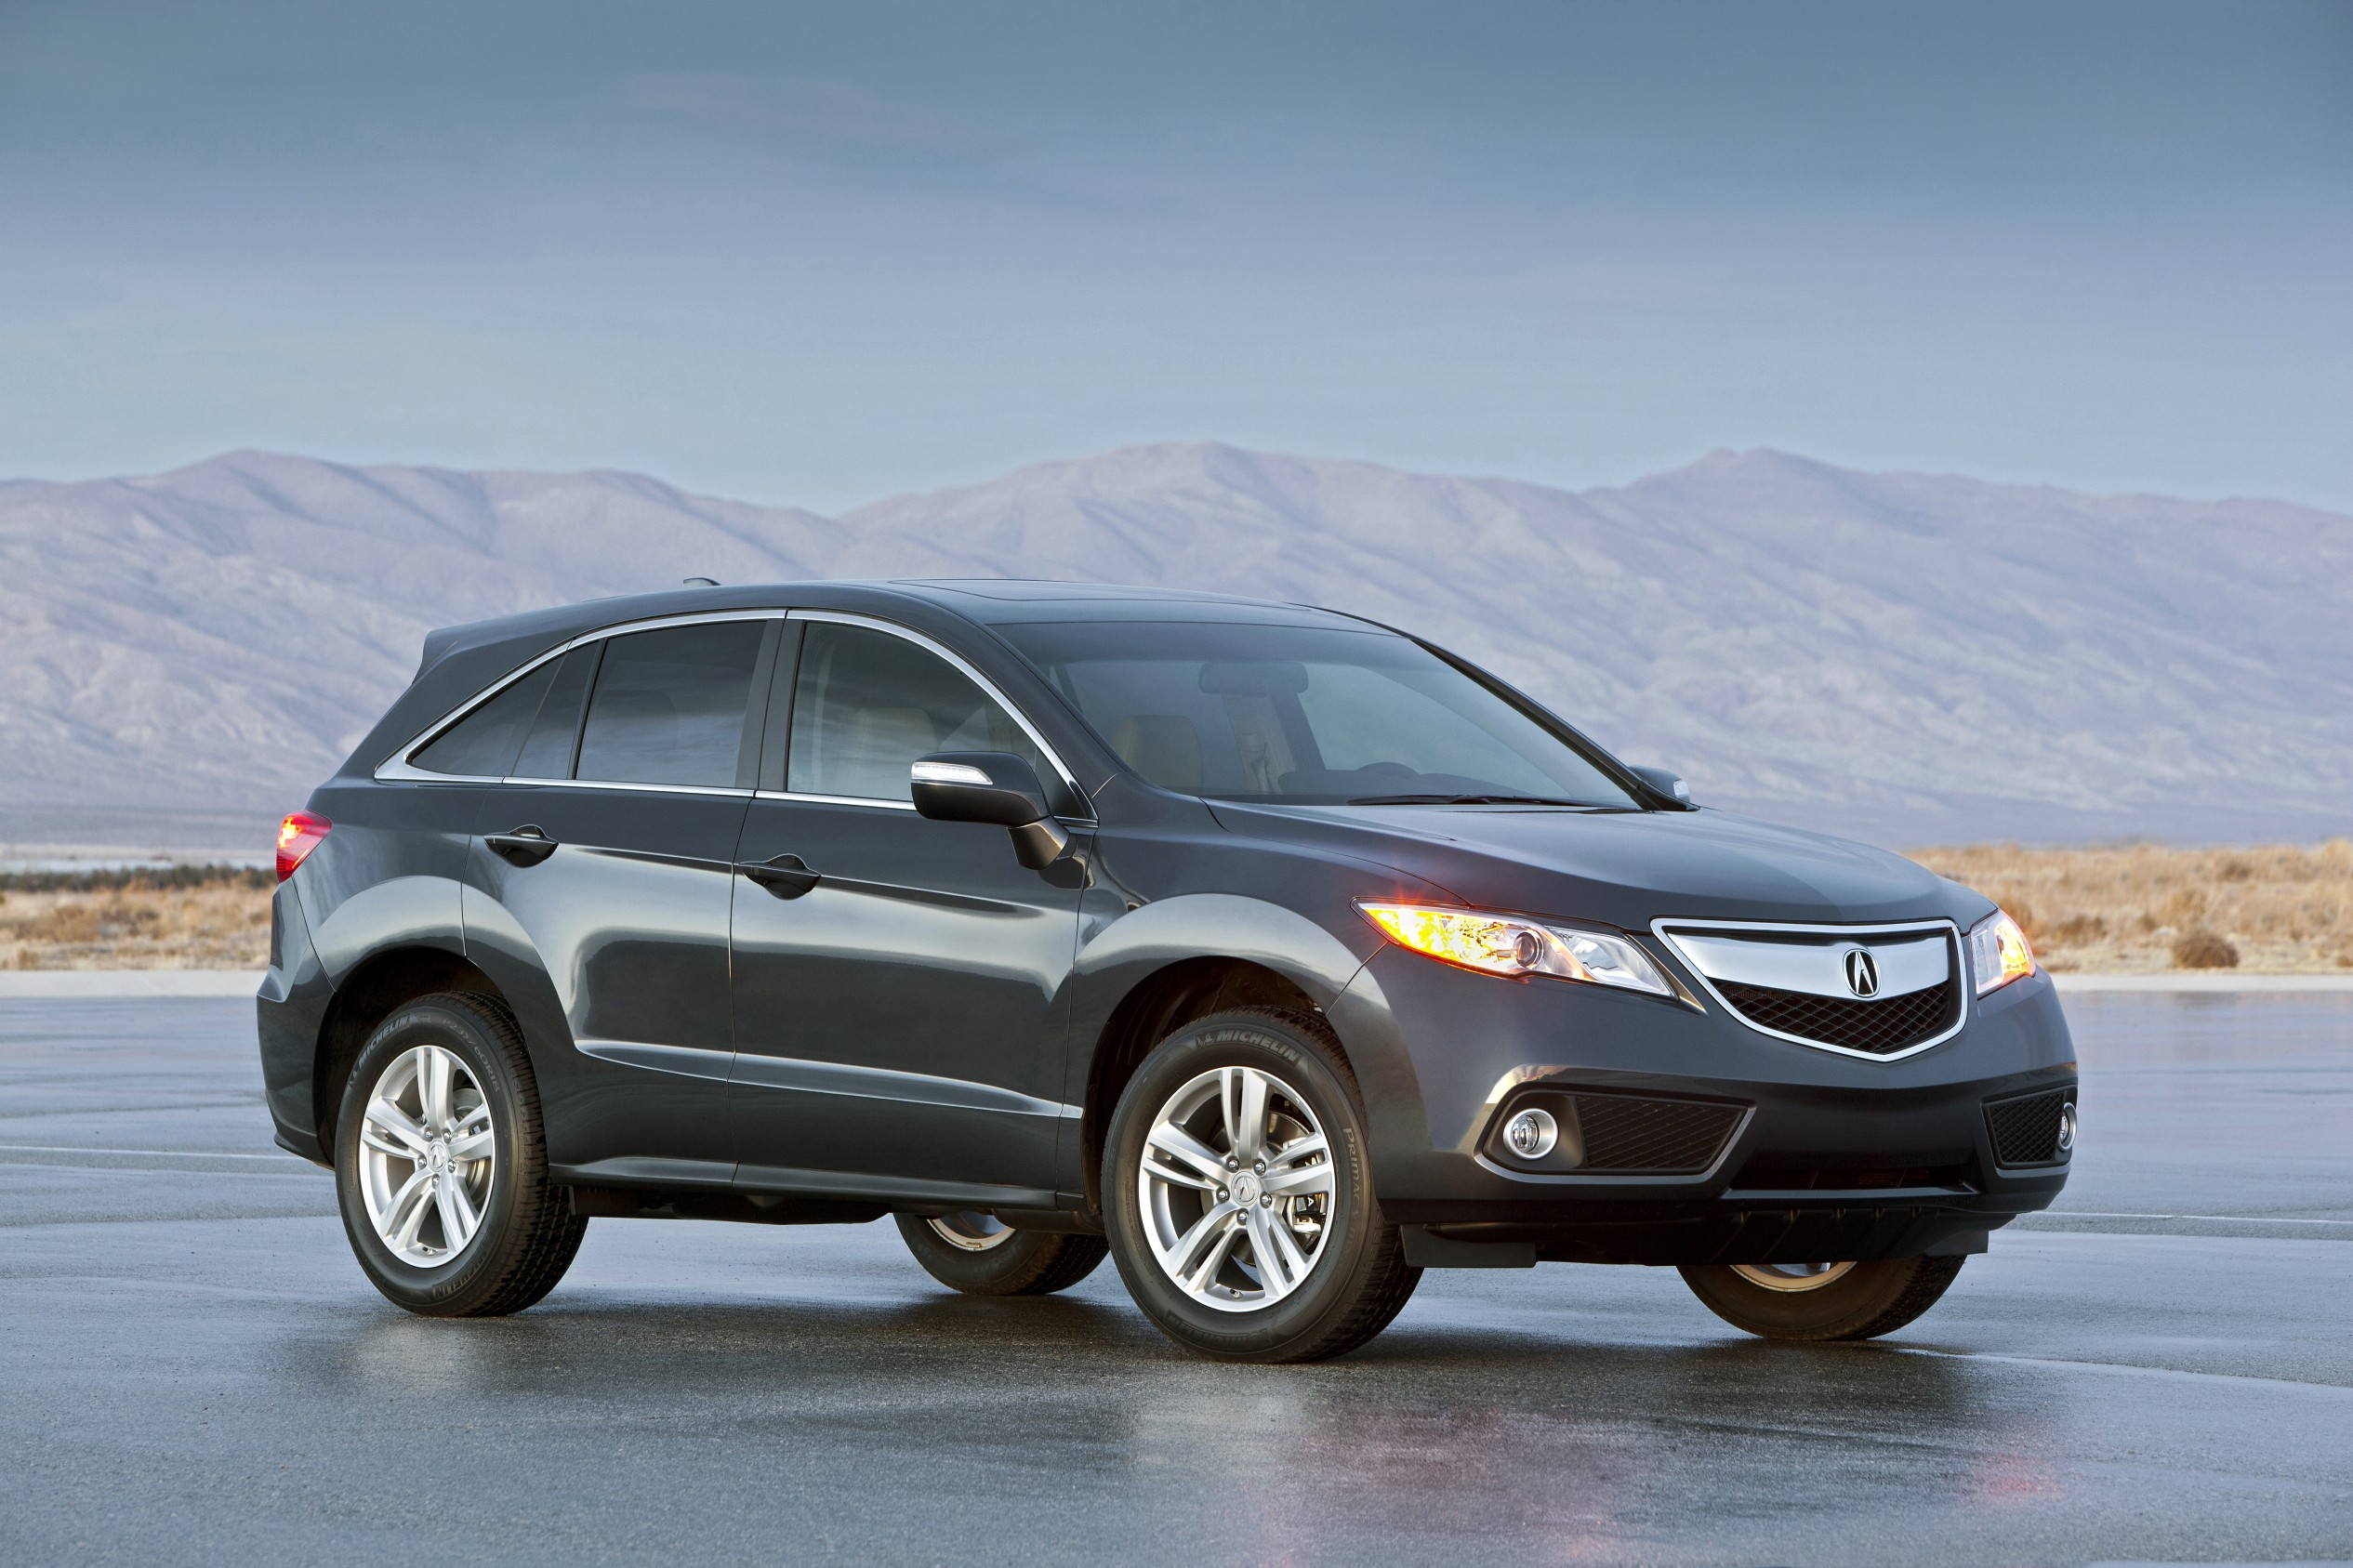 sale vehicles manchester package awd advance schaller models ct in featured for sh with mdx suv htm acura new